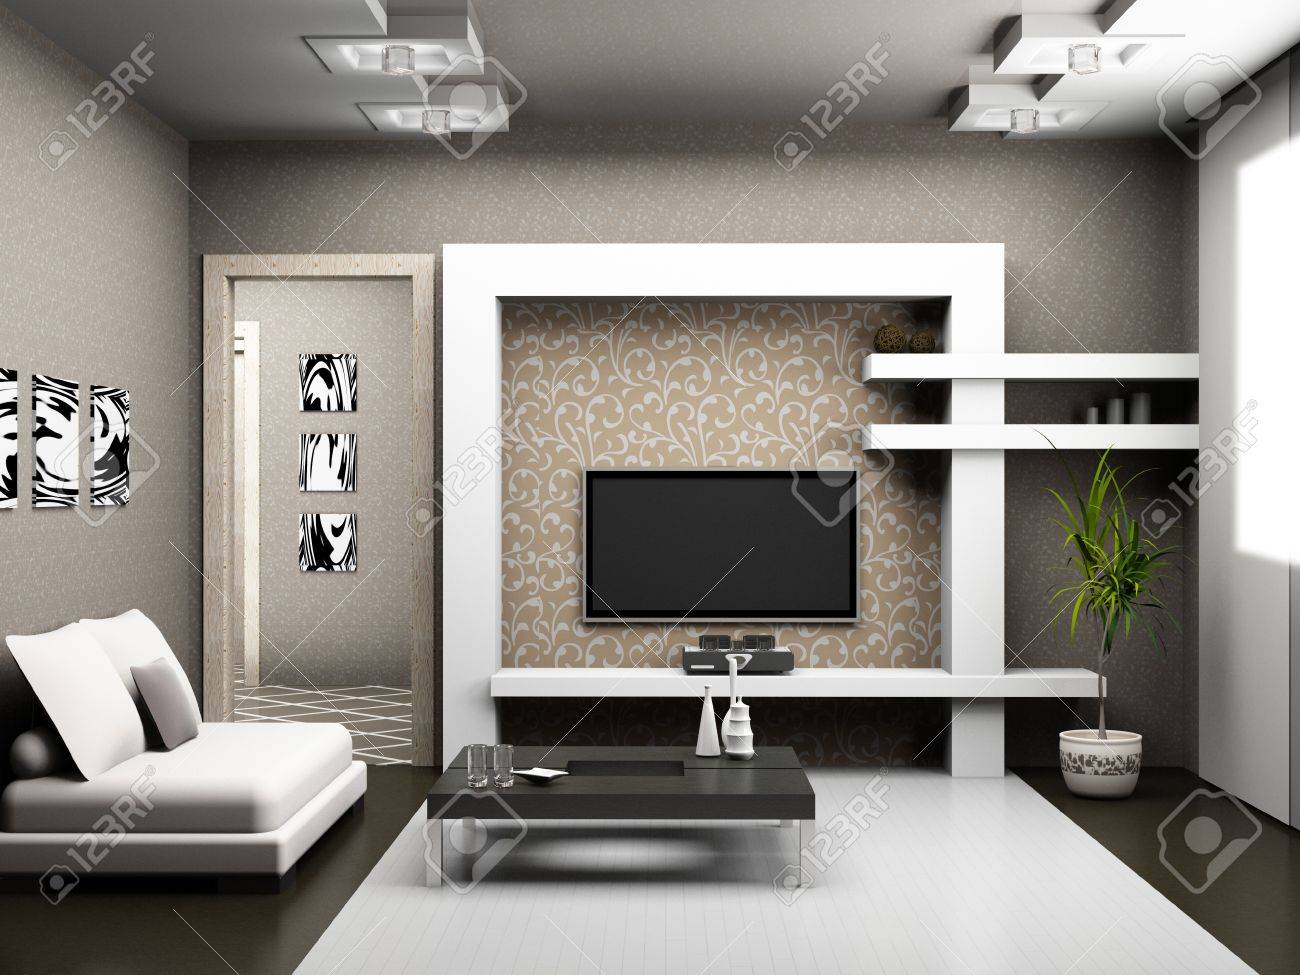 Living room 3D Stock Photo - 23000605